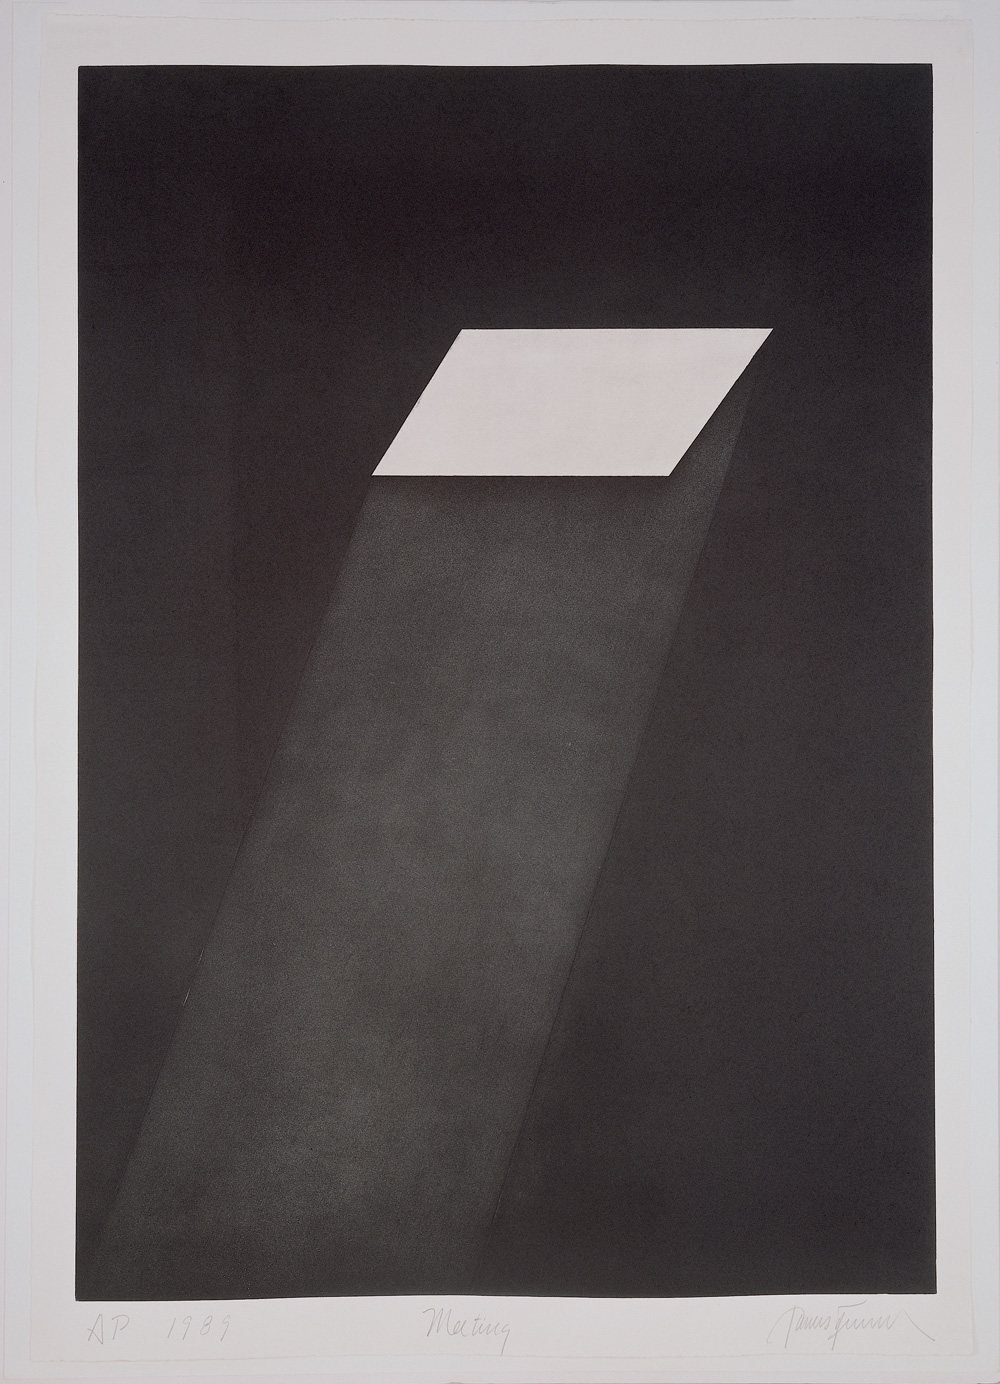 James Turrell Meeting (from the portfolio First Light), 1989–90 Aquatint, 108 x 75.6 cm © James Turrell Photo: Courtesy Peter Blum Edition, New York